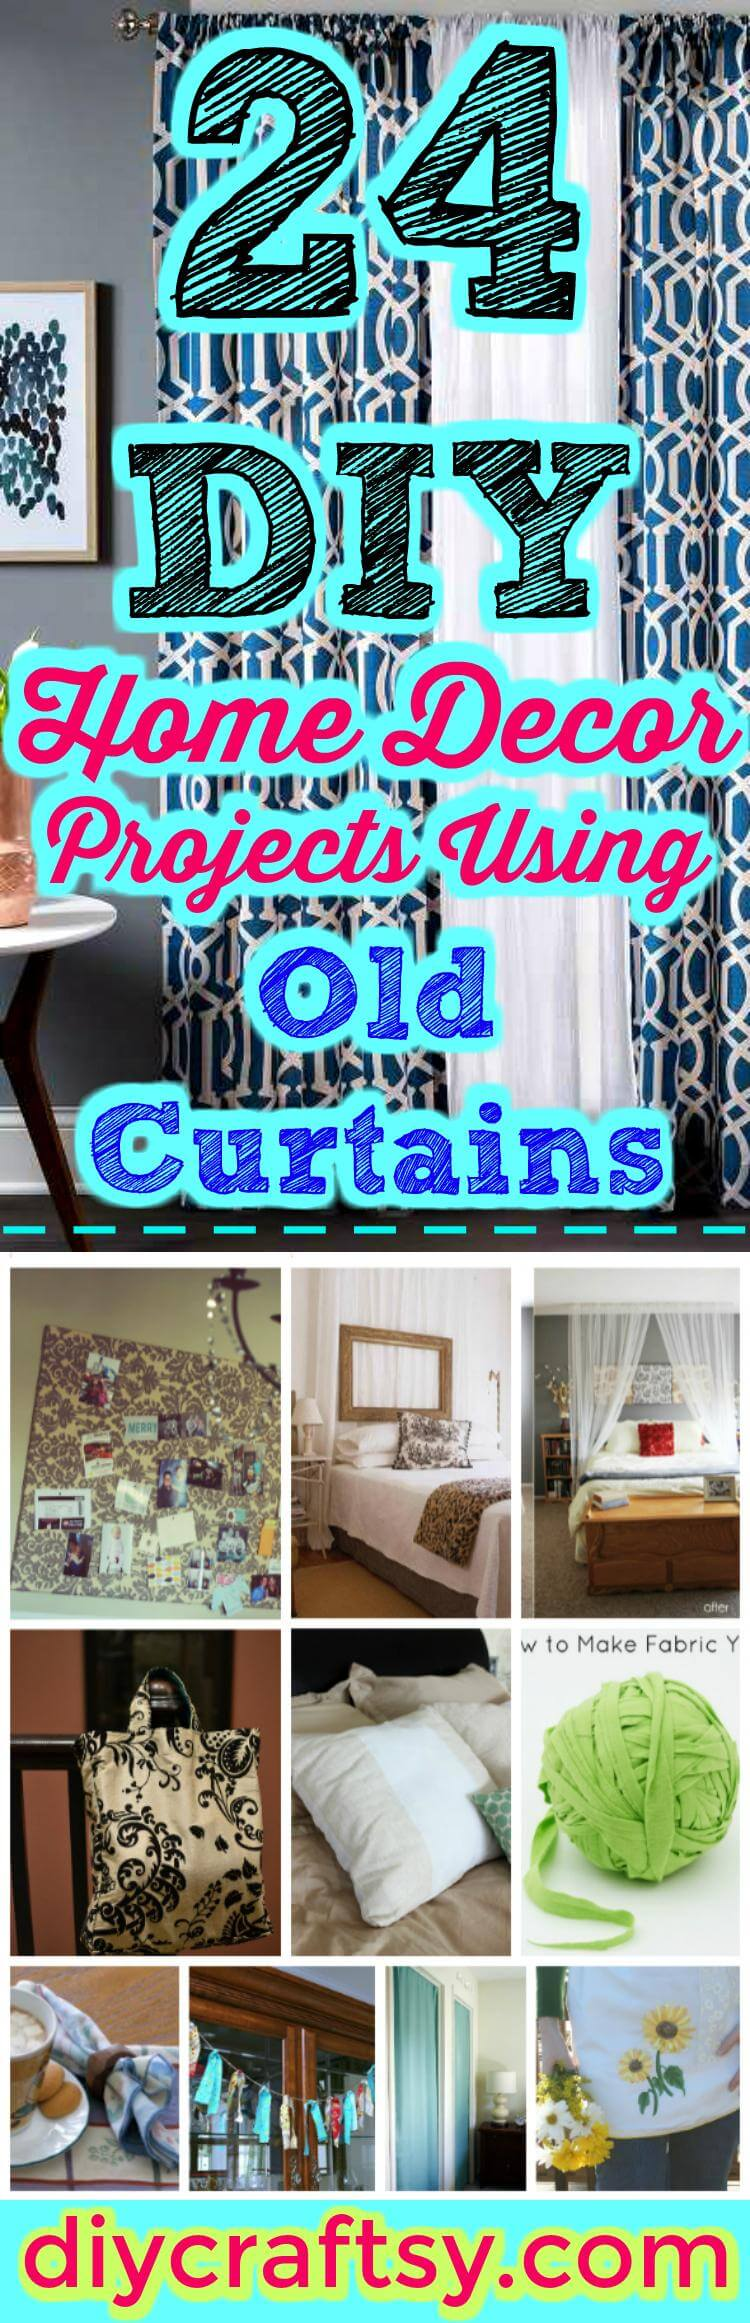 Best 24 Diy Home Decor Projects Using Old Curtains Page 2 Of This Month